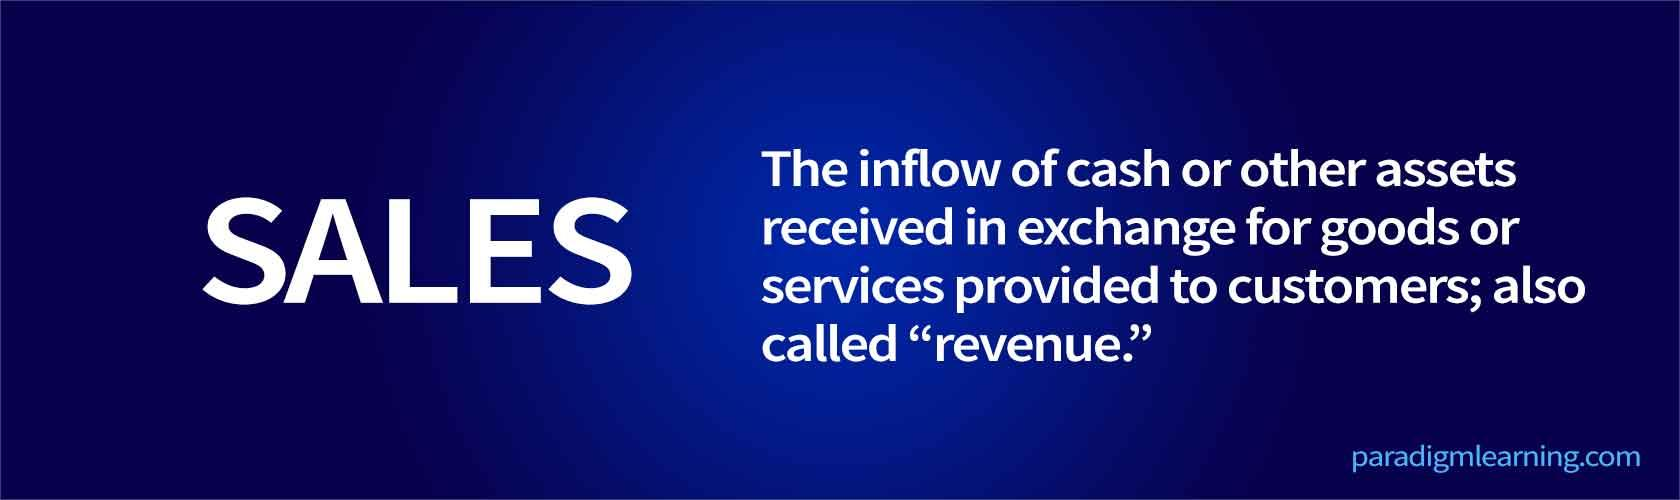 "The inflow of cash or other assets received in exchange for goods or services provided to customers; also called ""revenue."""